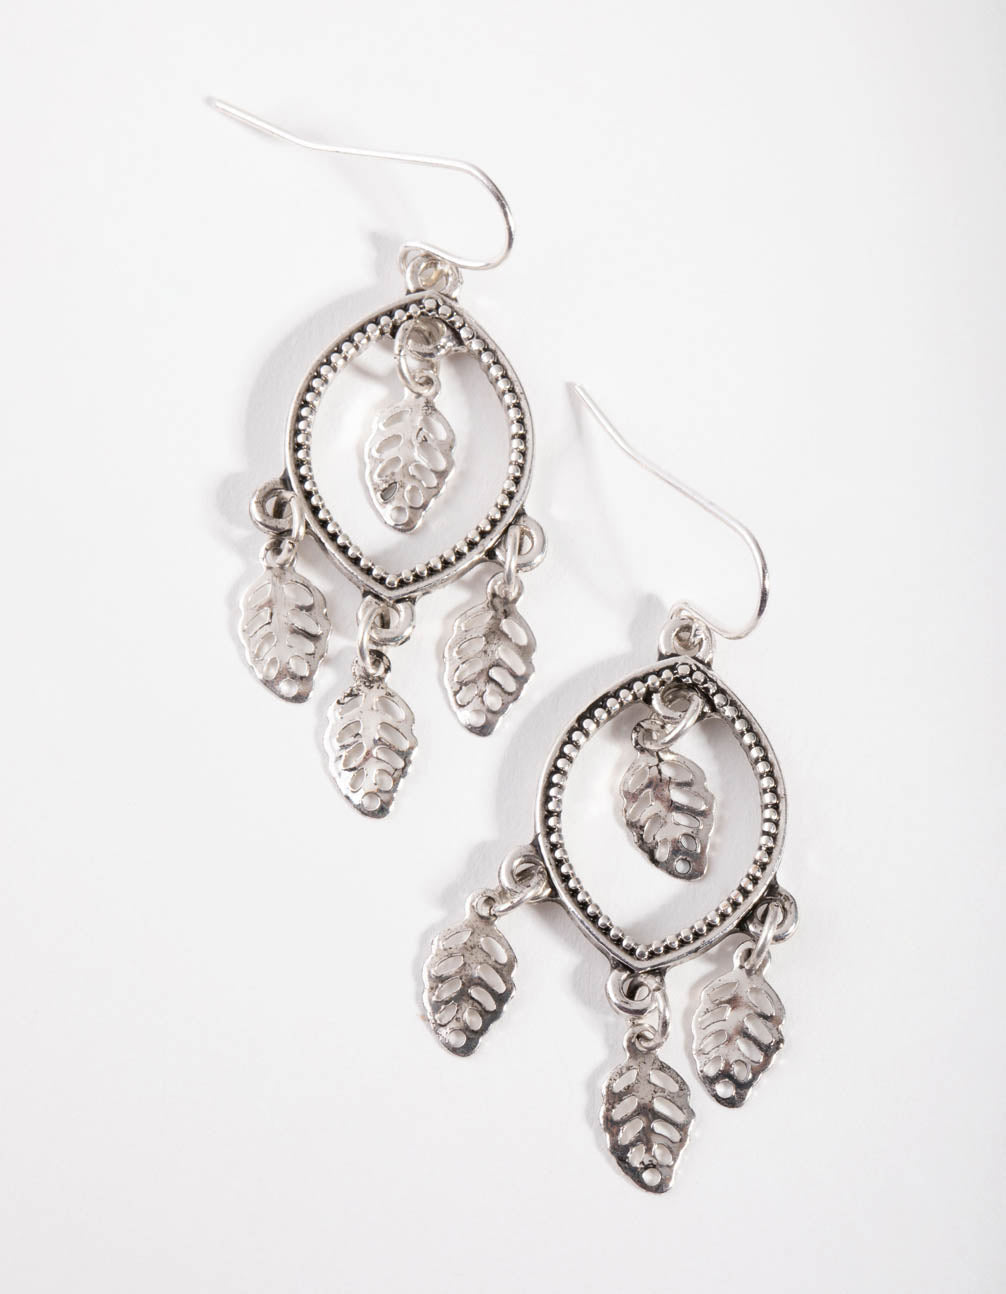 Antique Silver Open Round Drop Earrings